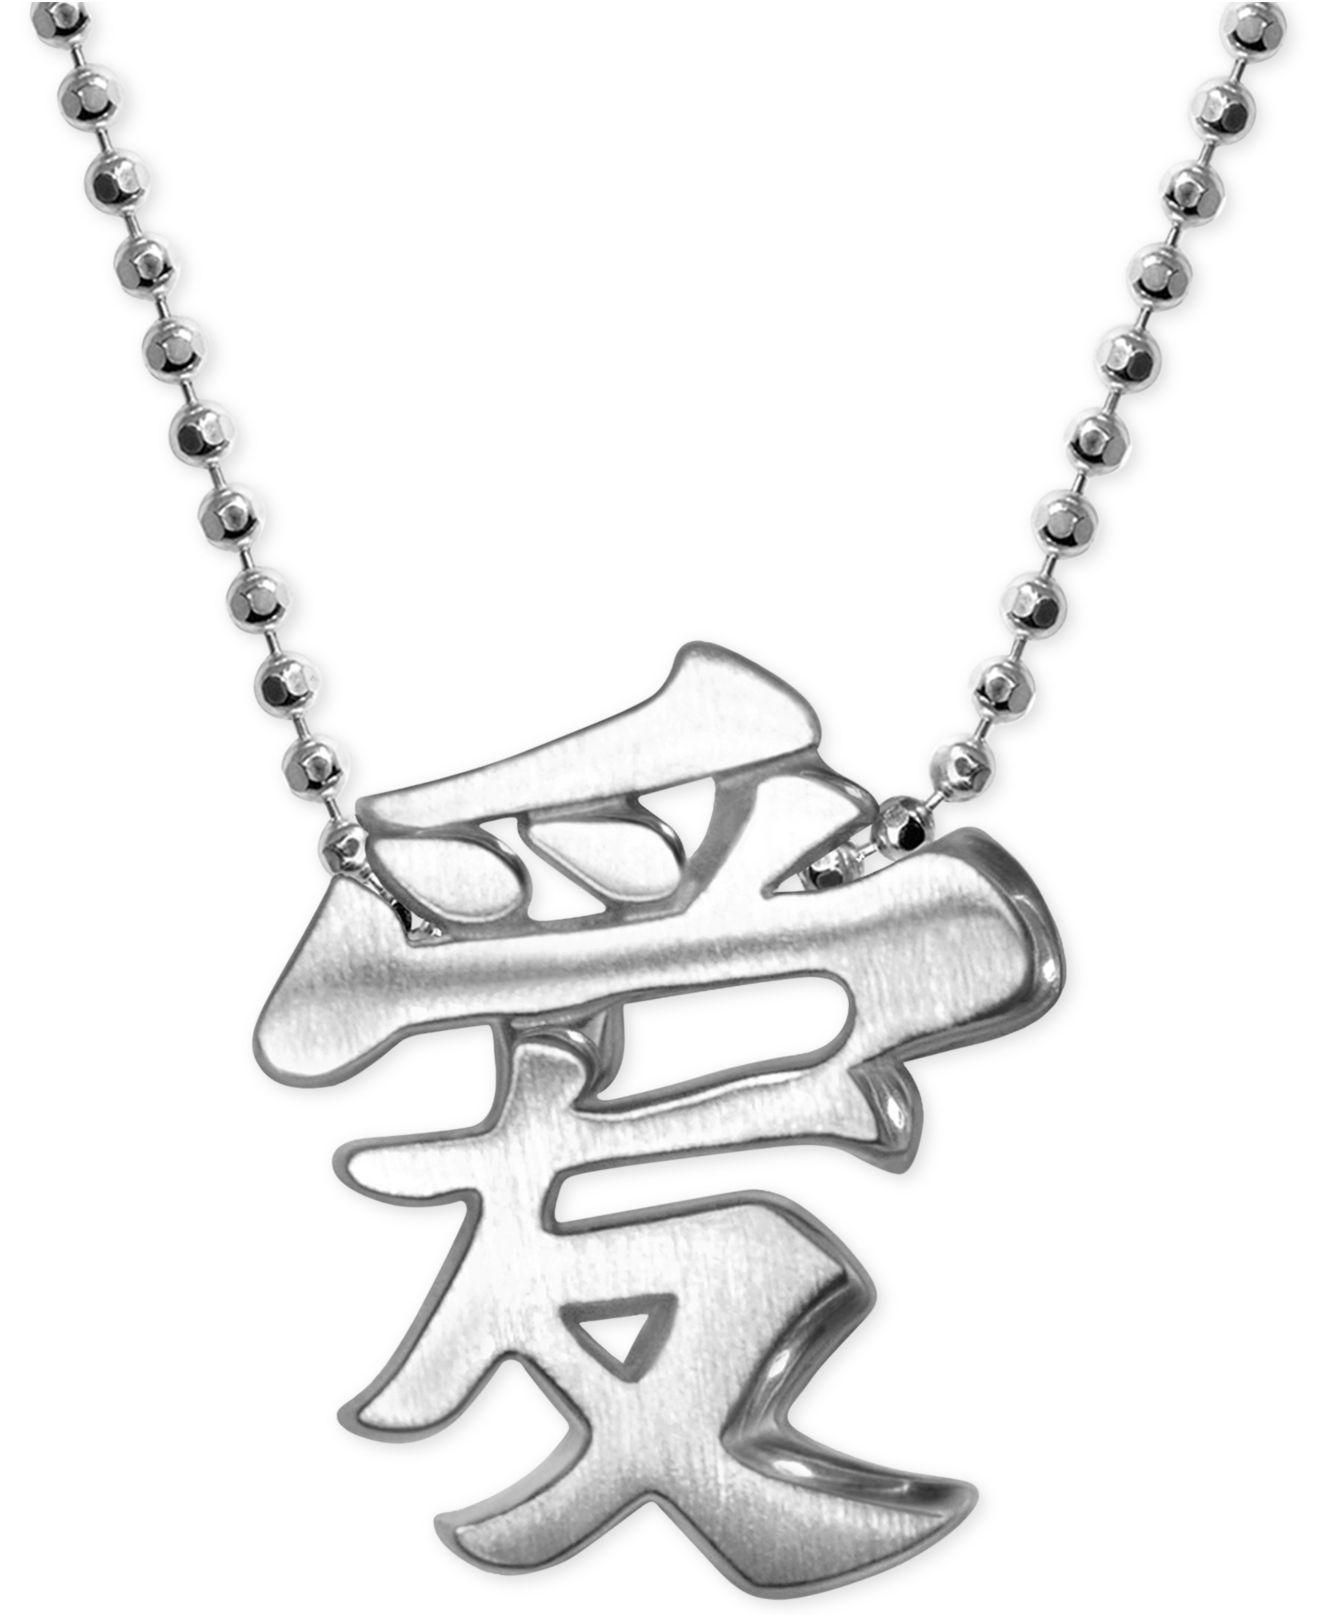 Alex woo faith hanzi symbol pendant necklace in sterling silver featured biocorpaavc Images